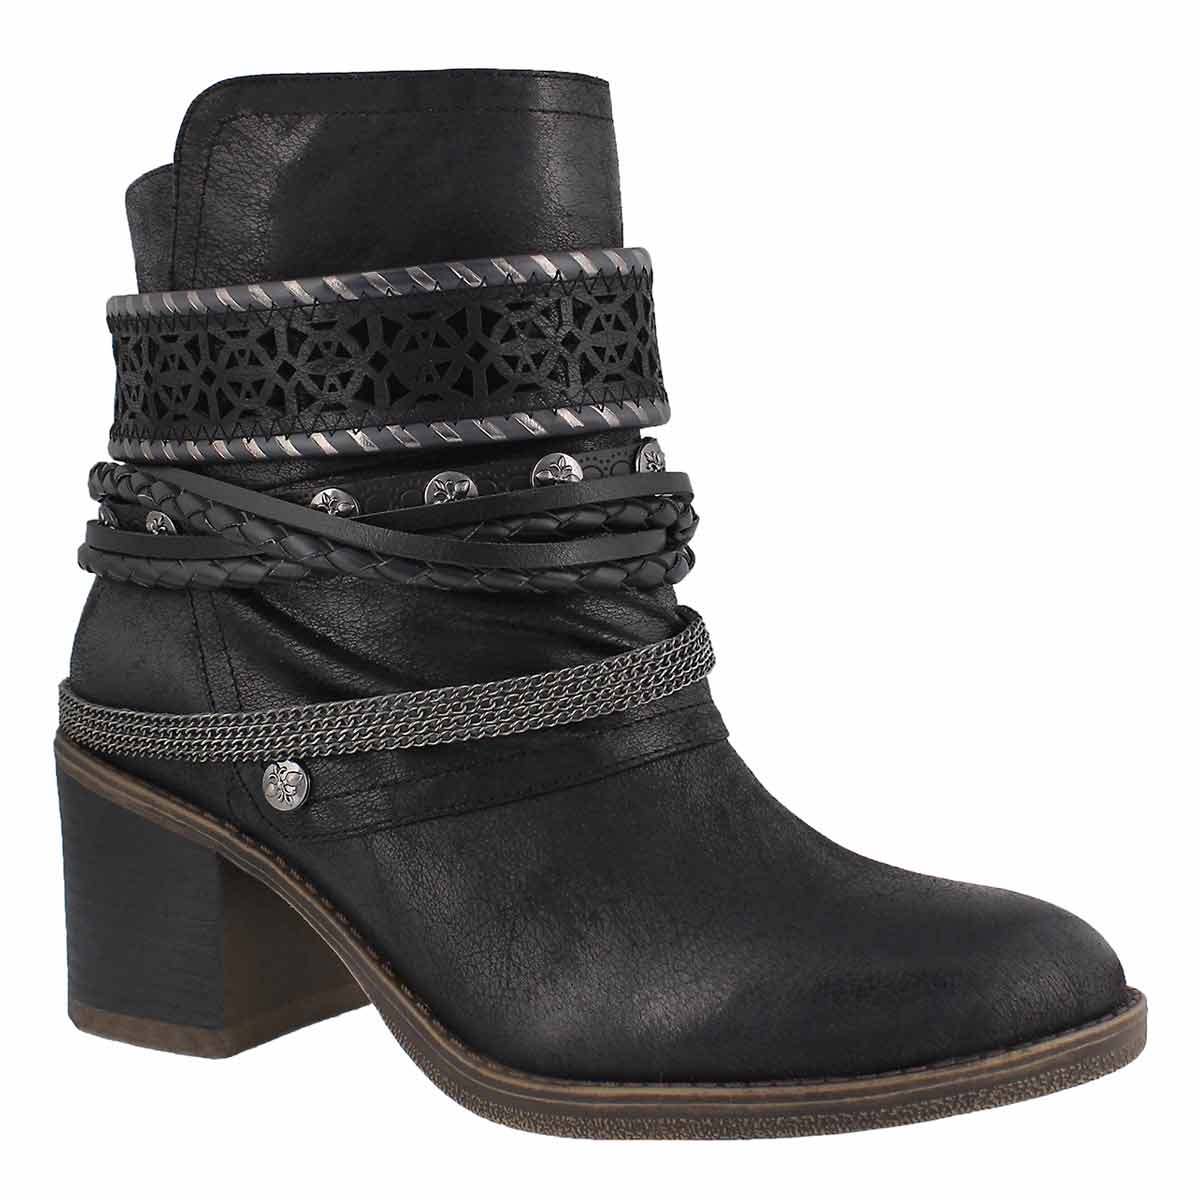 Lds Bizou 4 black casual ankle boot